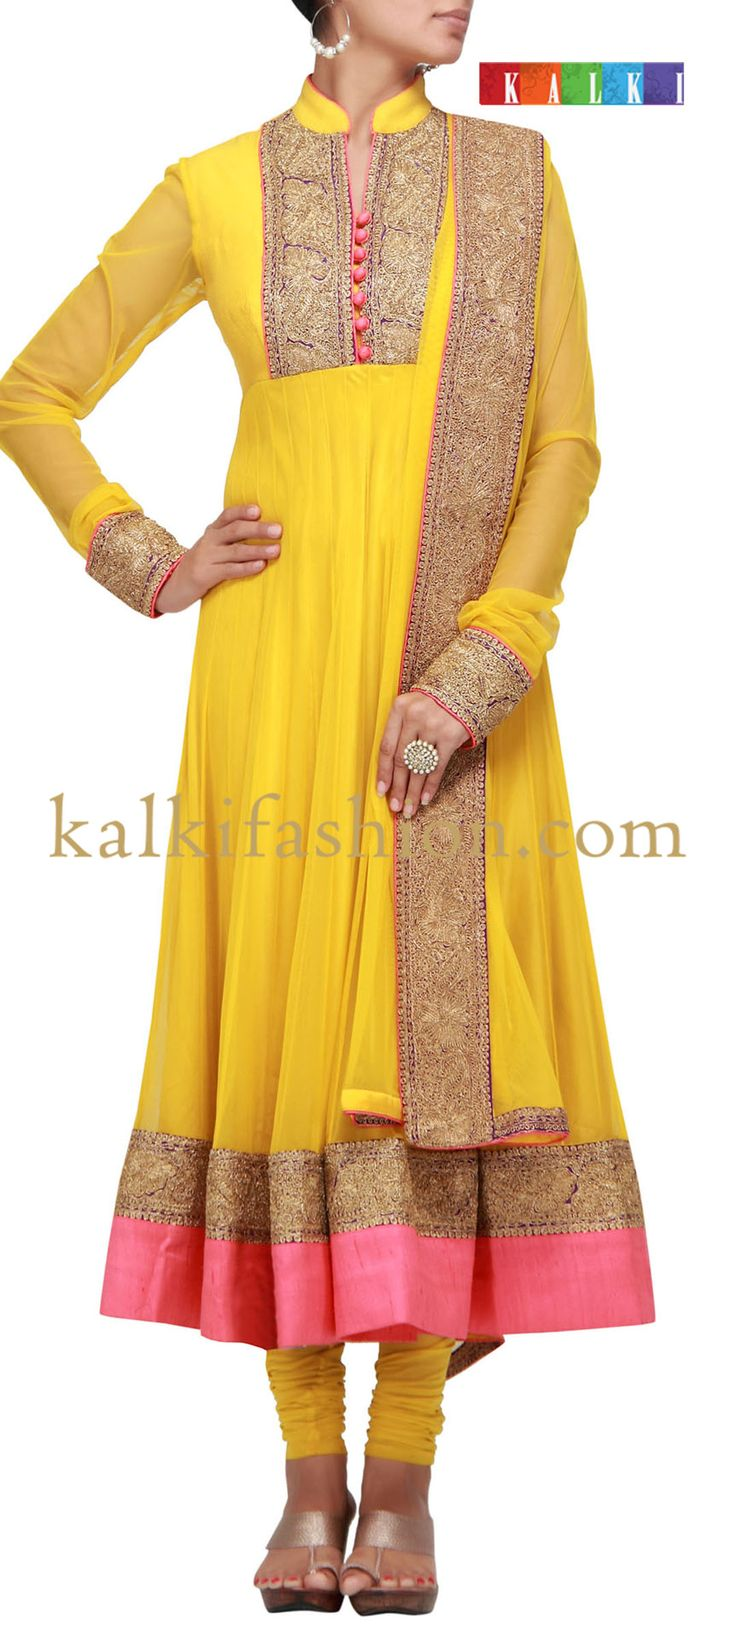 Buy it now  http://www.kalkifashion.com/mustard-anarkali-dress-with-dori-embroidery.html  Mustard anarkali dress with dori embroidery